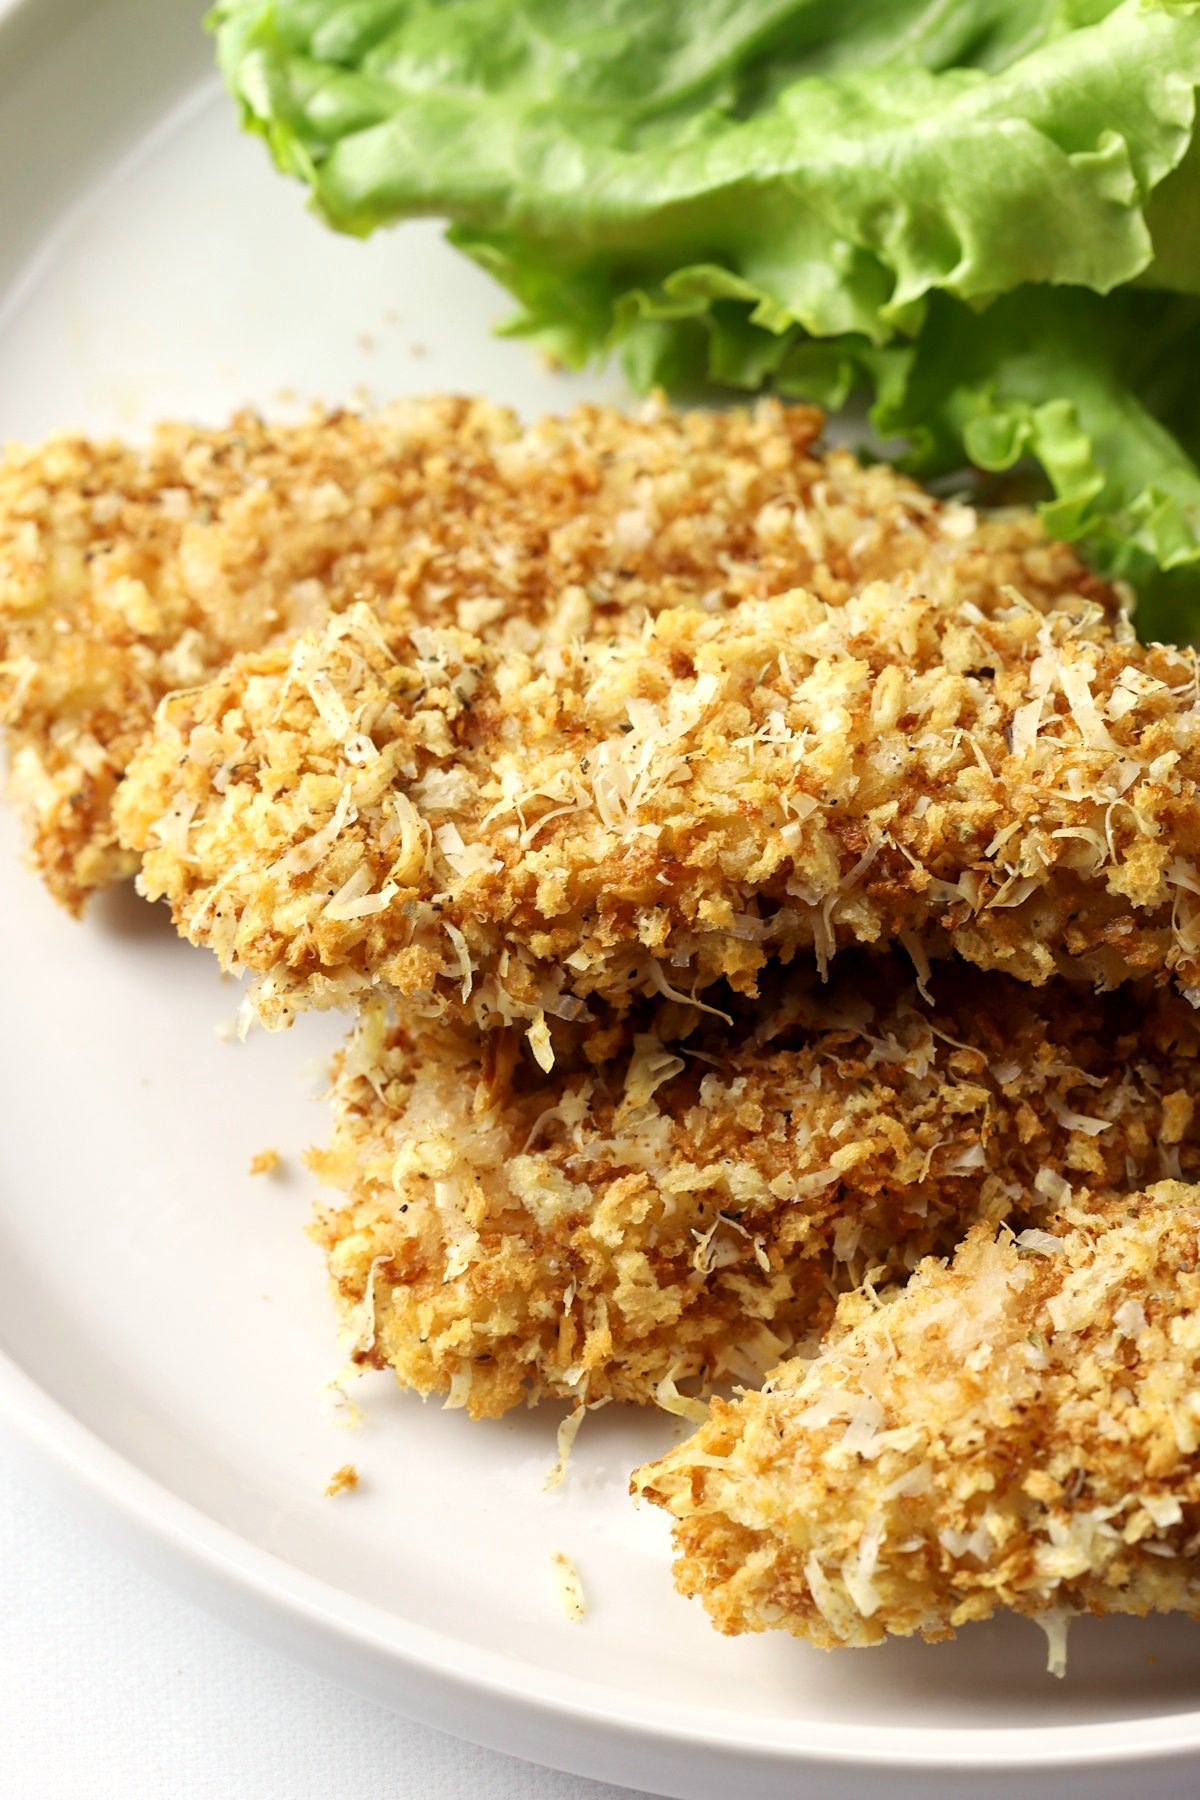 A plate of parmesan crusted chicken tenders.